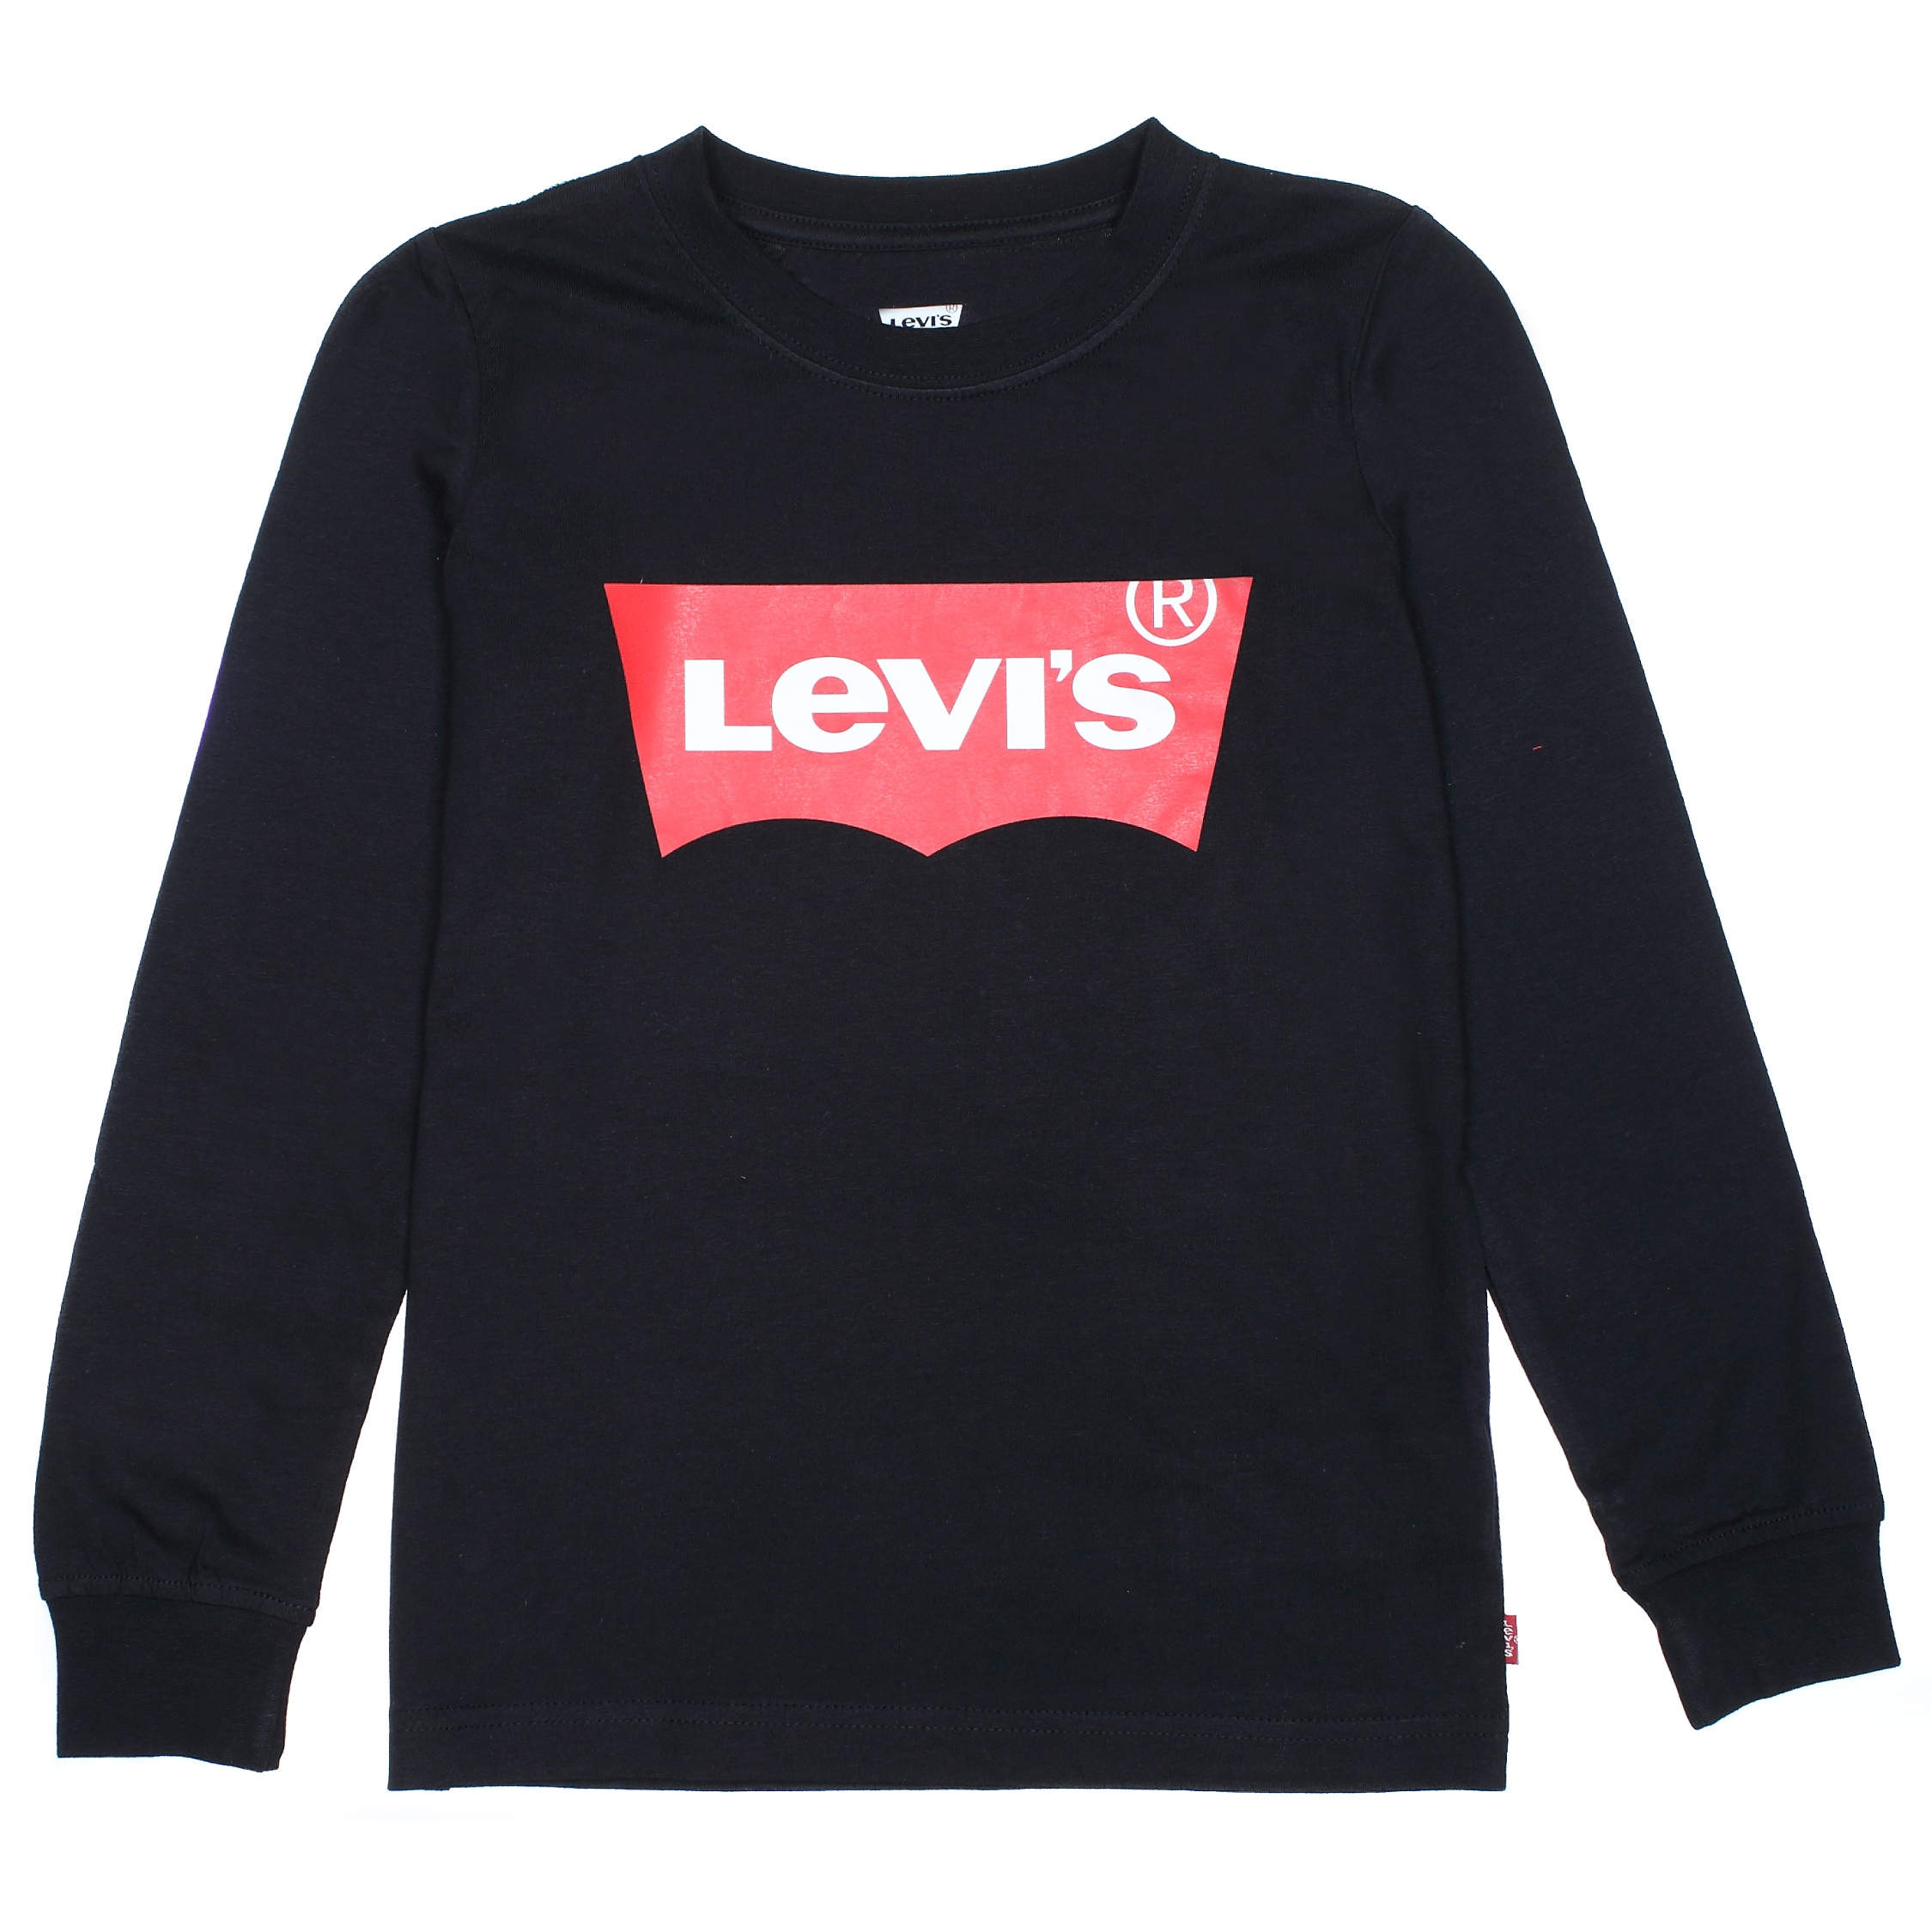 https://www.leadermode.com/183876/levis-8646-023-black.jpg